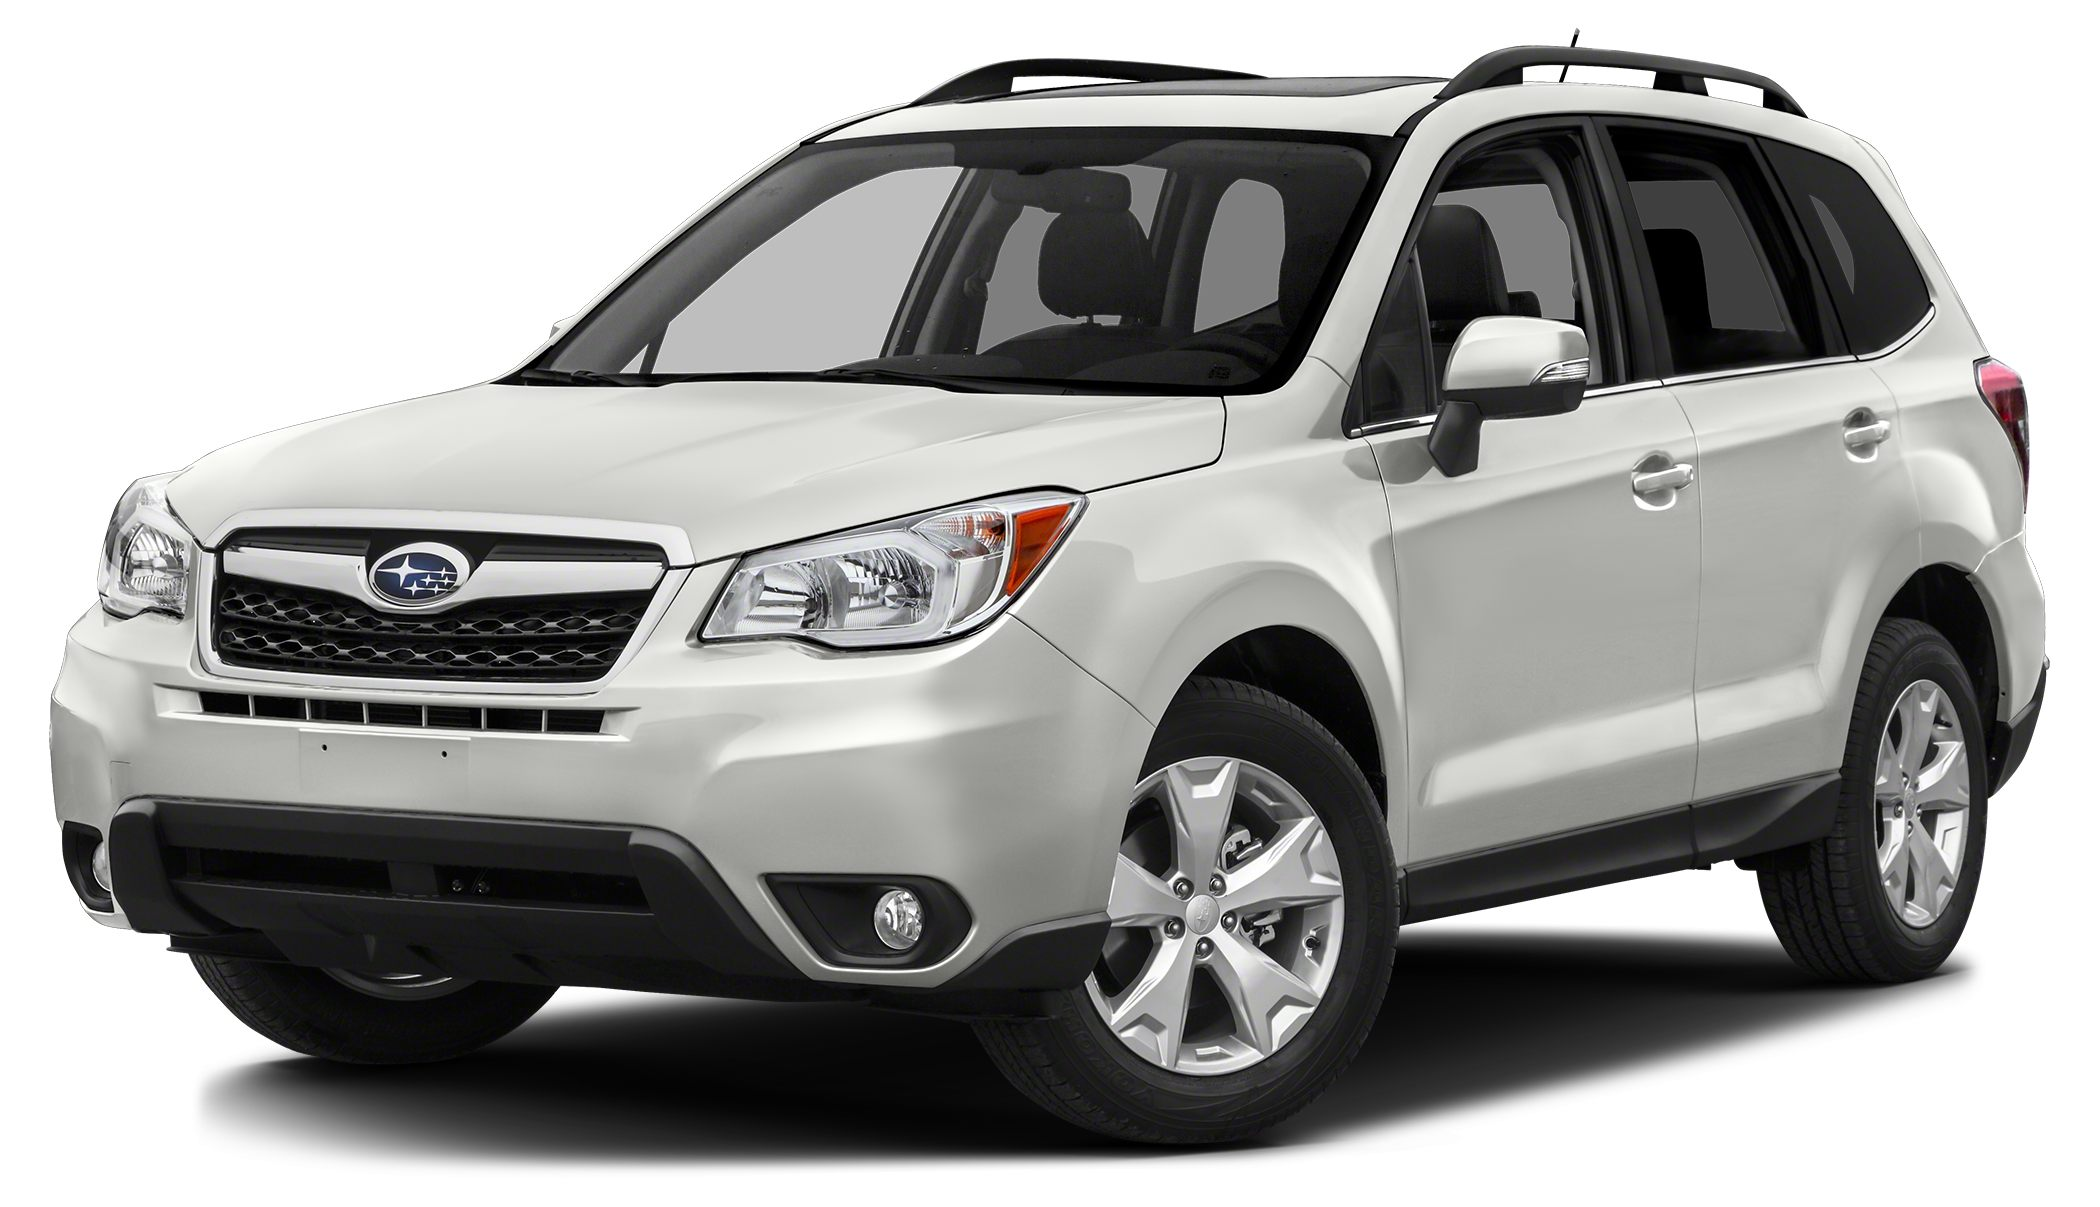 2016 Subaru Forester 25i Limited Miles 3900Color Crystal White Pearl Stock 16U556 VIN JF2SJ